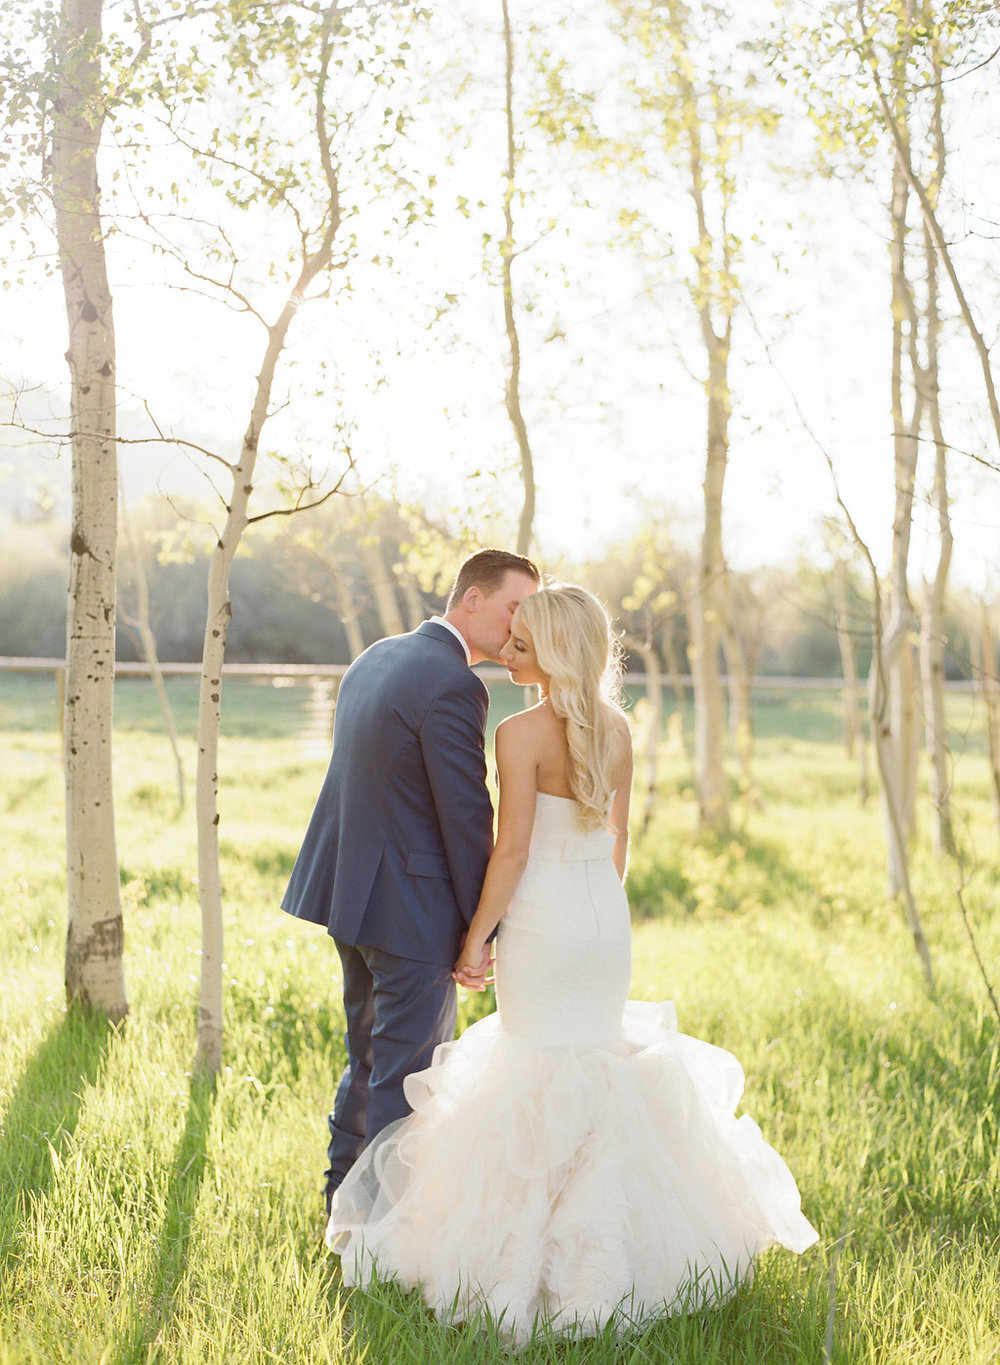 Moose Creek Ranch Wedding Venue in Jackson Hole